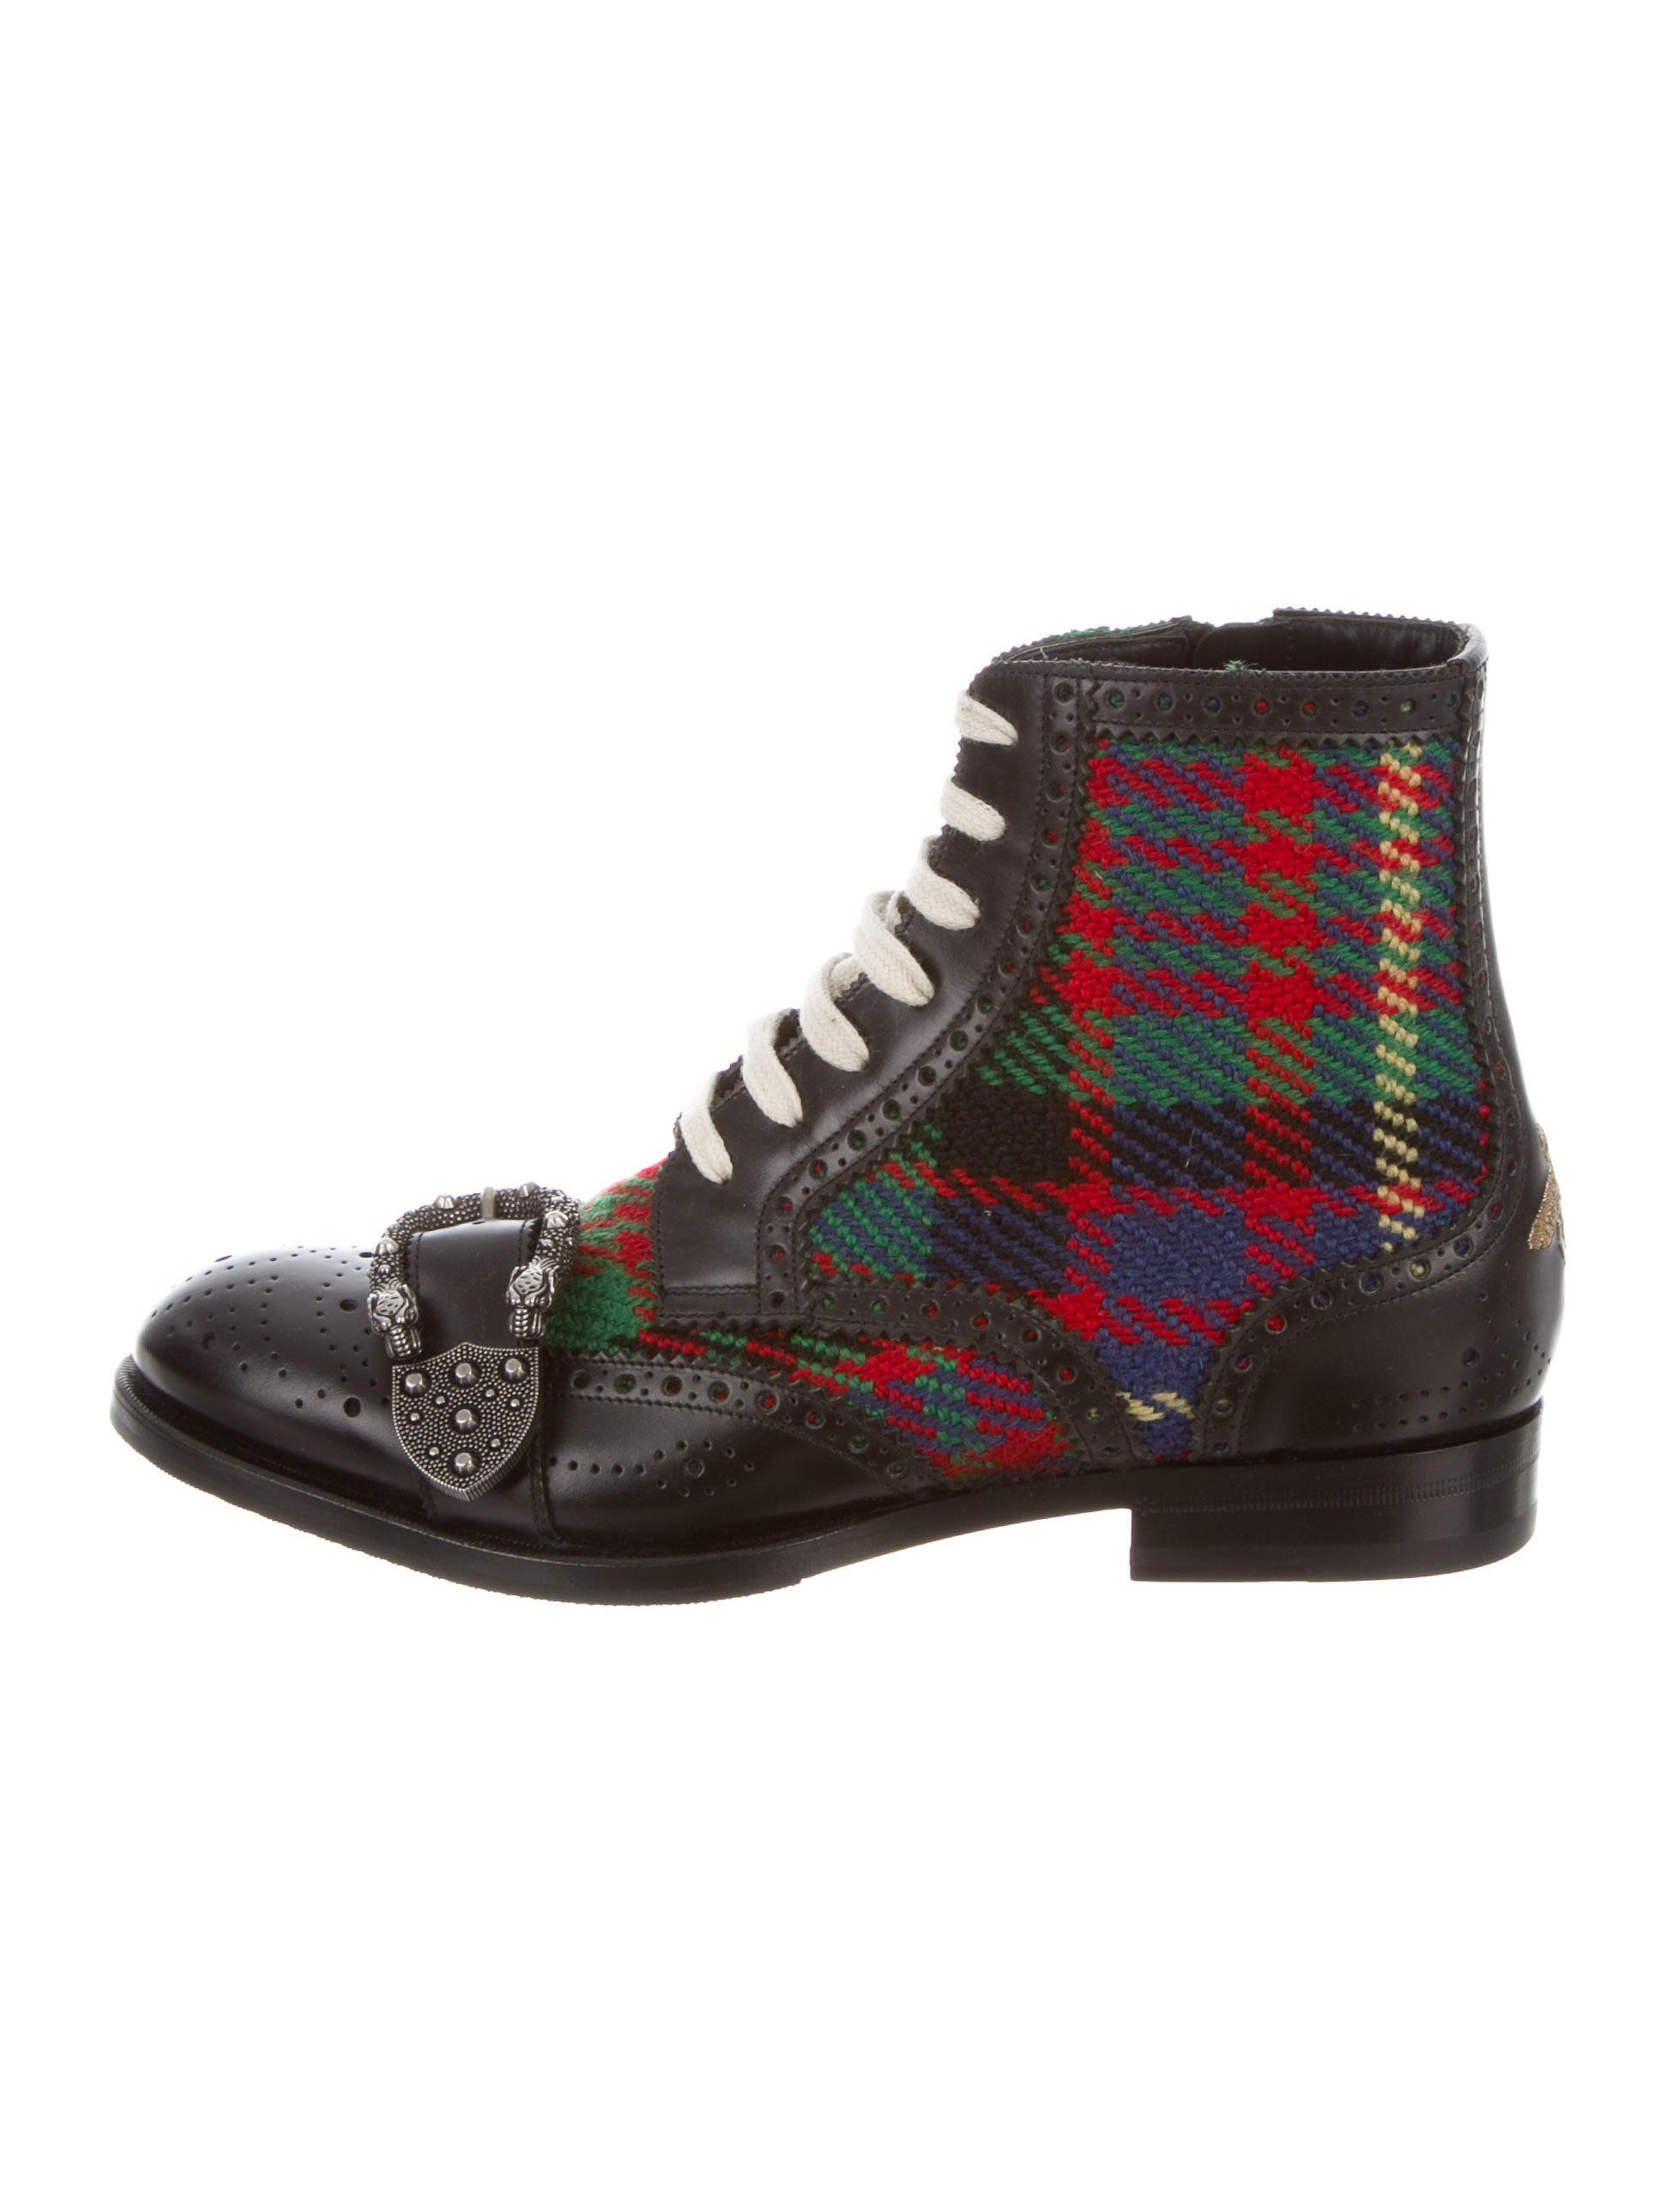 4ba26a157 Men's black and multicolor leather and tweed Queercore Brogue round-toe  ankle boots boots with plaid pattern throughout,gucci#Queercore #tweed#leather